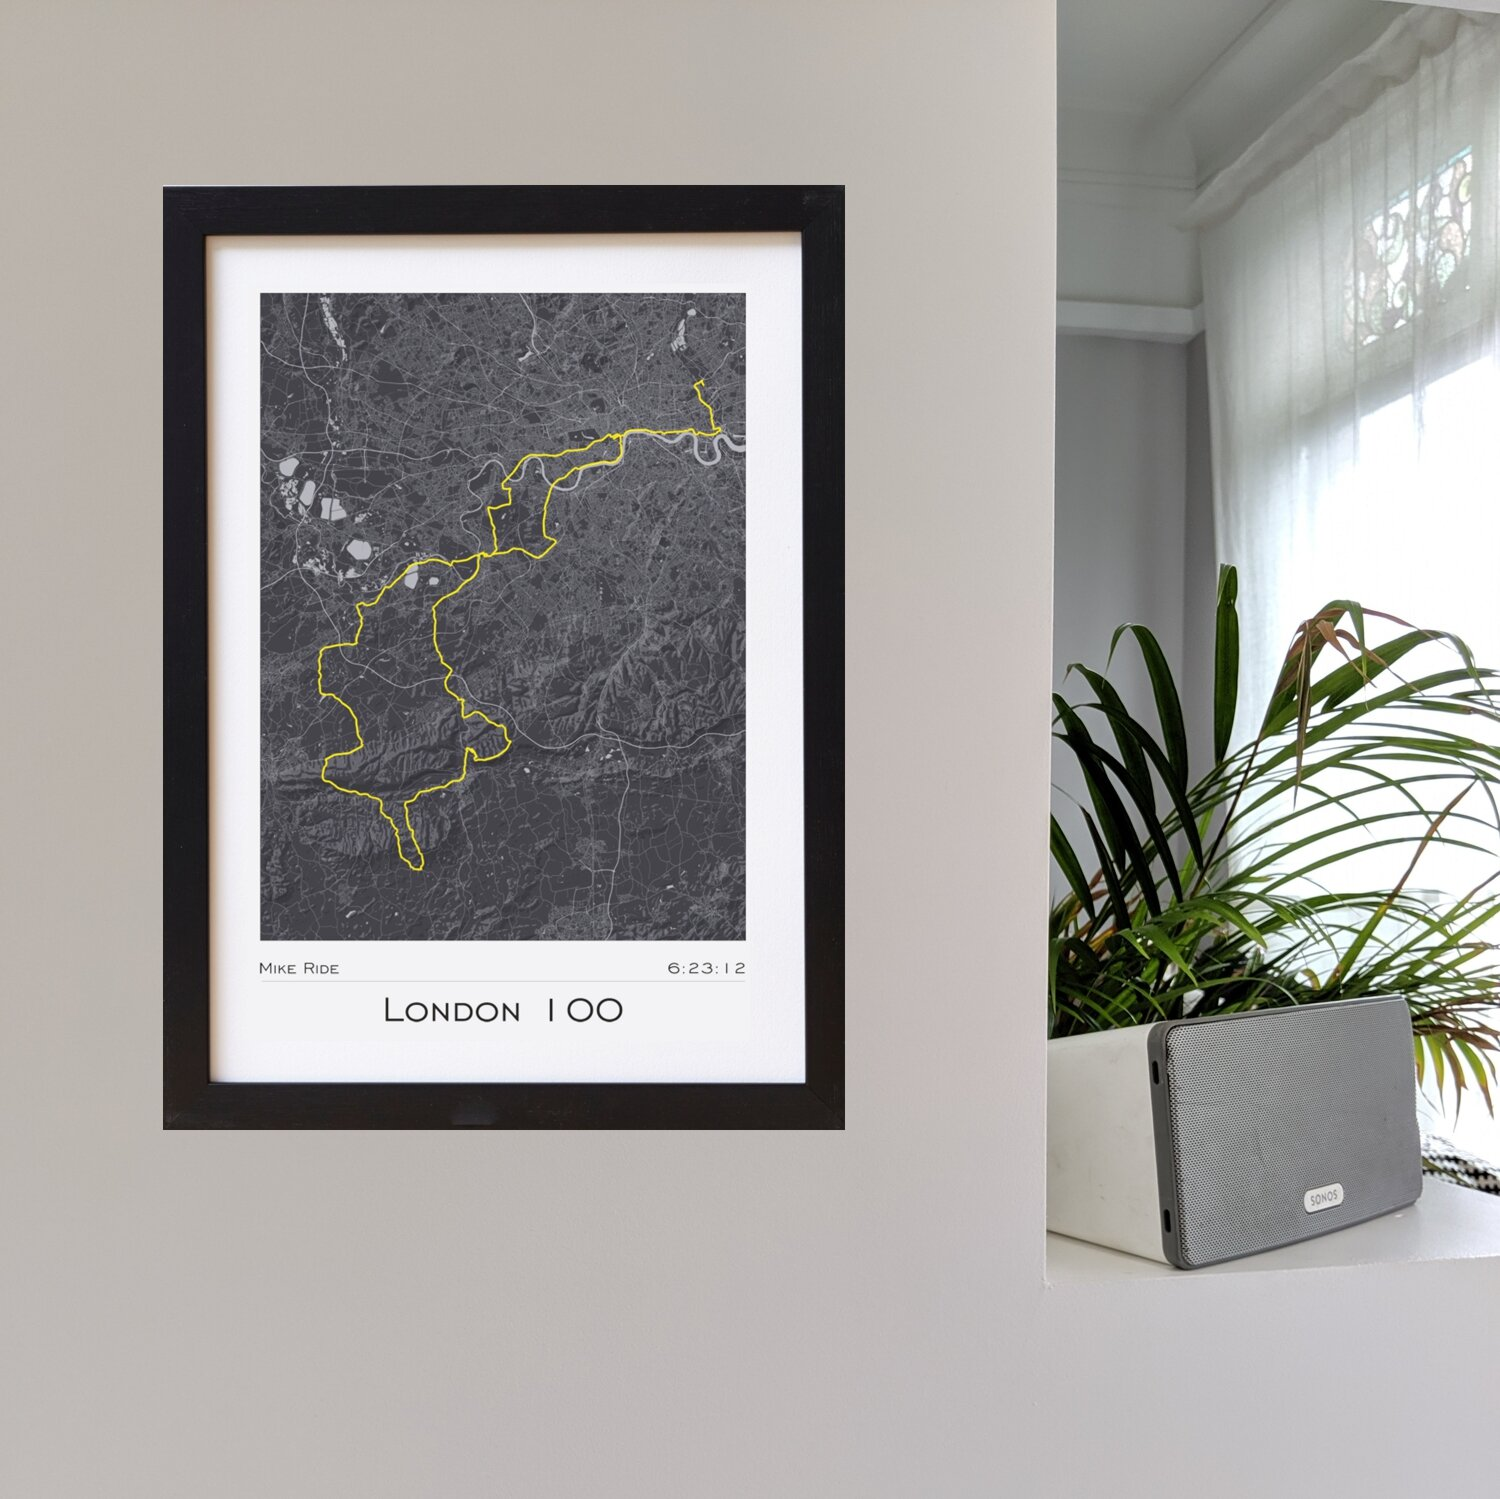 Strava pRINTS - cYCLING - Just choose the 'ANY' version of the style you prefer. Choose your map colour and framing options. Then add any personalised text you would like to appear and your link to the Strava cycle you would like to print. It's that simple!